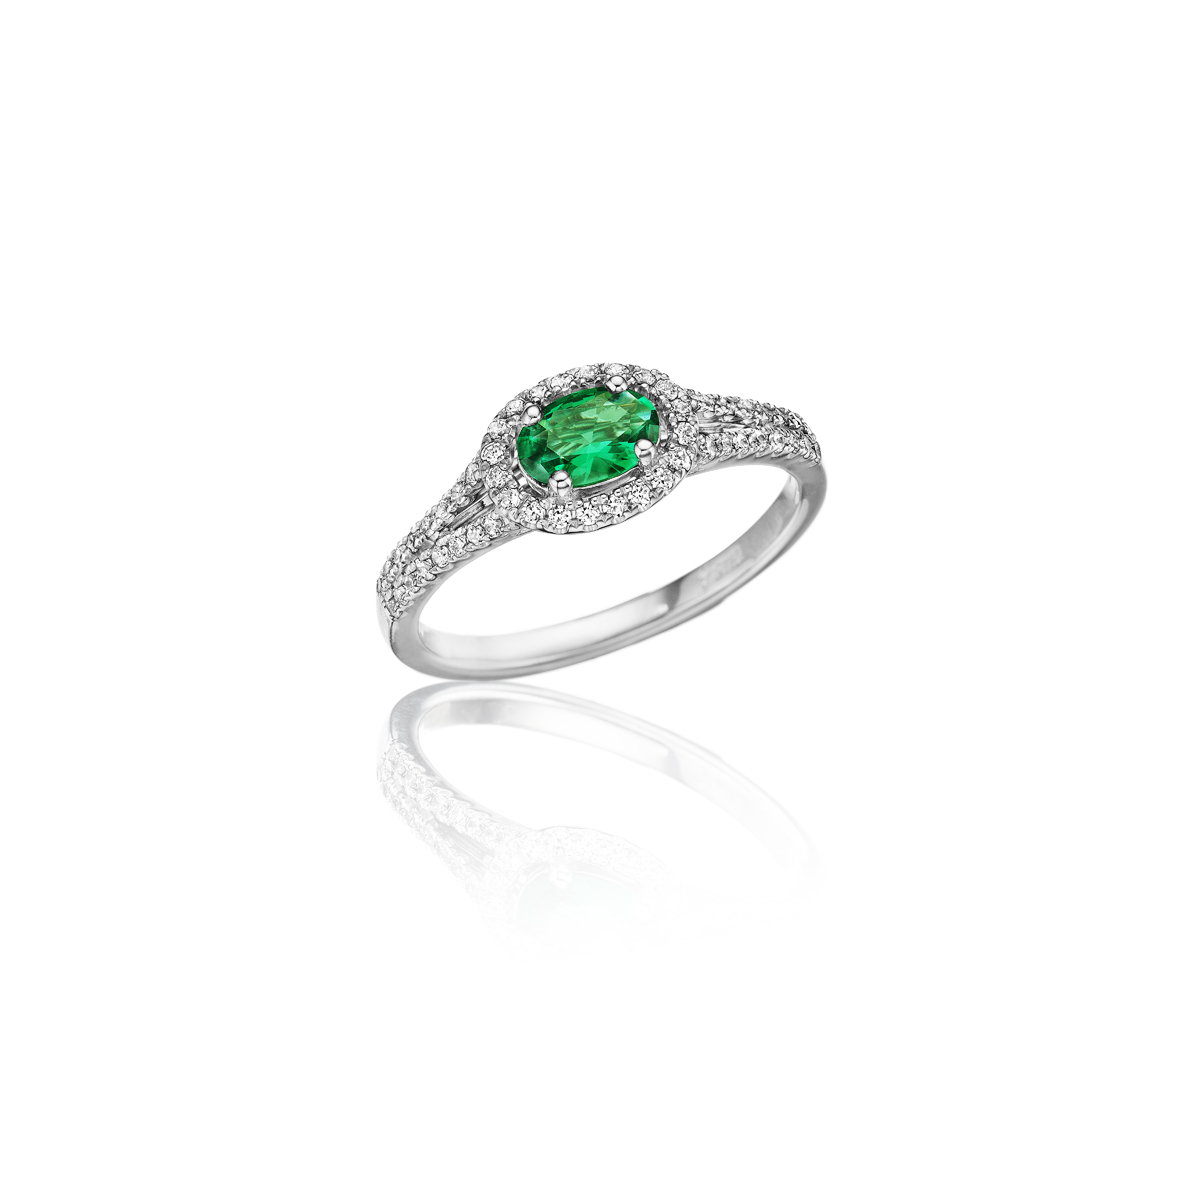 Always On My Mind Emerald and Diamond Oval Cut Ring - This always on my mind emerald and diamond oval cut ring comes in a variety of material types like 14k white gold, yellow gold, rose gold and can be customized with your jeweler. Fana diamond earrings are perfect for that special woman in your life.